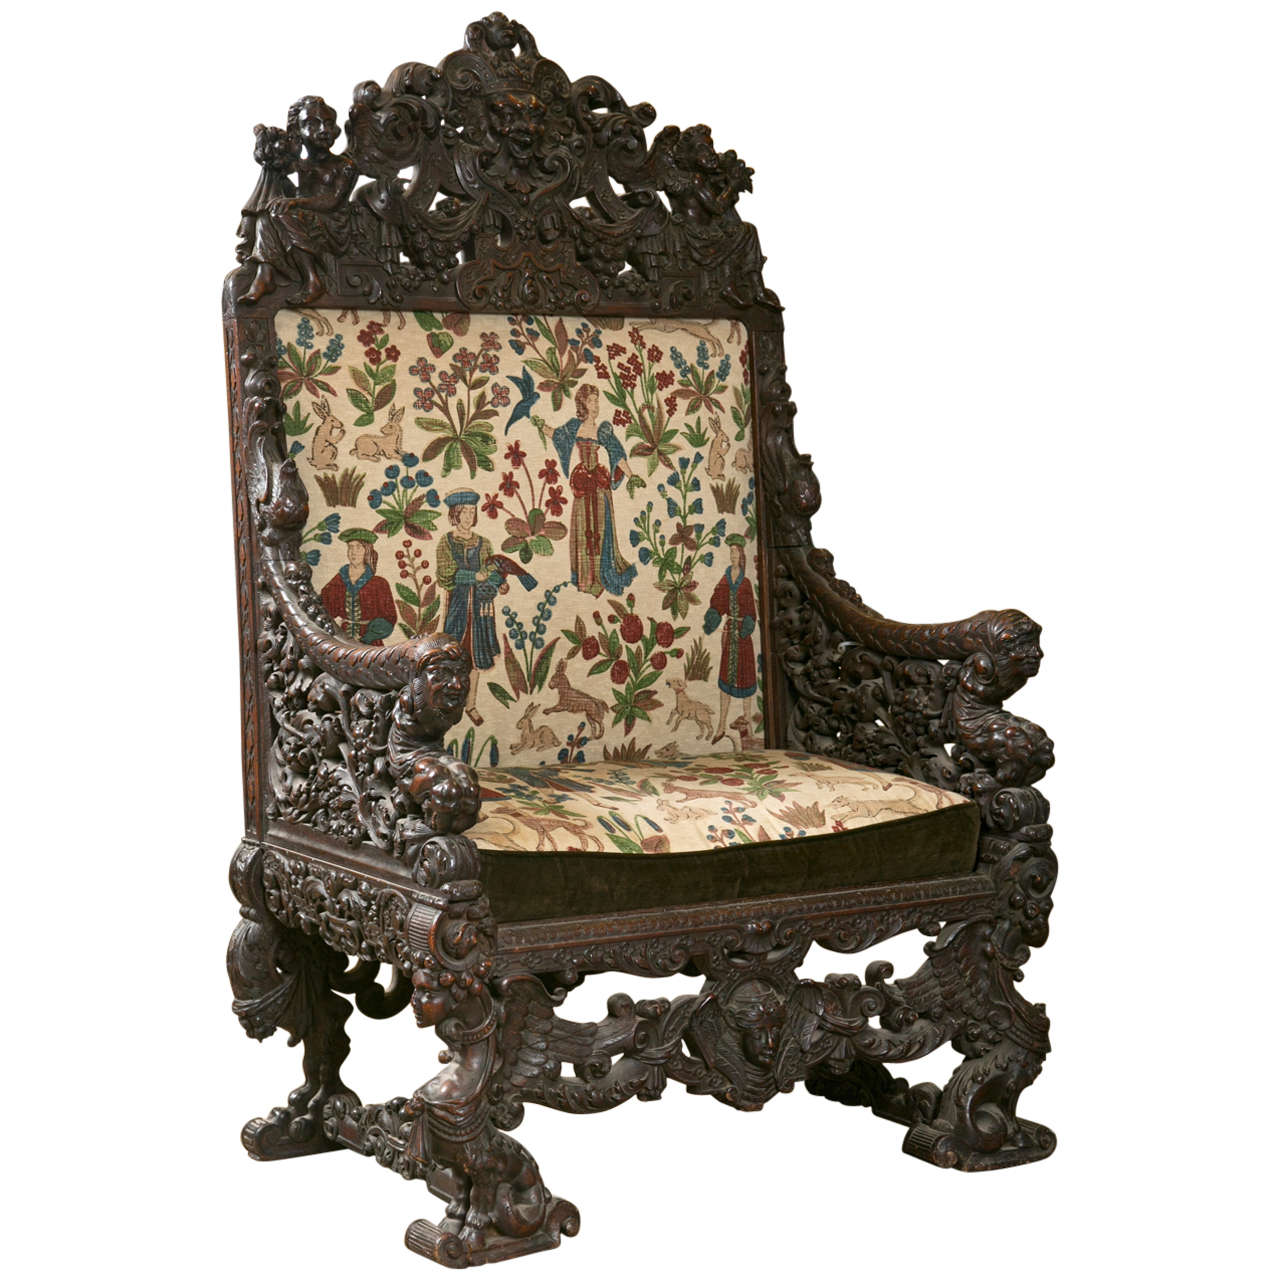 Antique Oversized Carved Medieval Throne Chair At 1stdibs